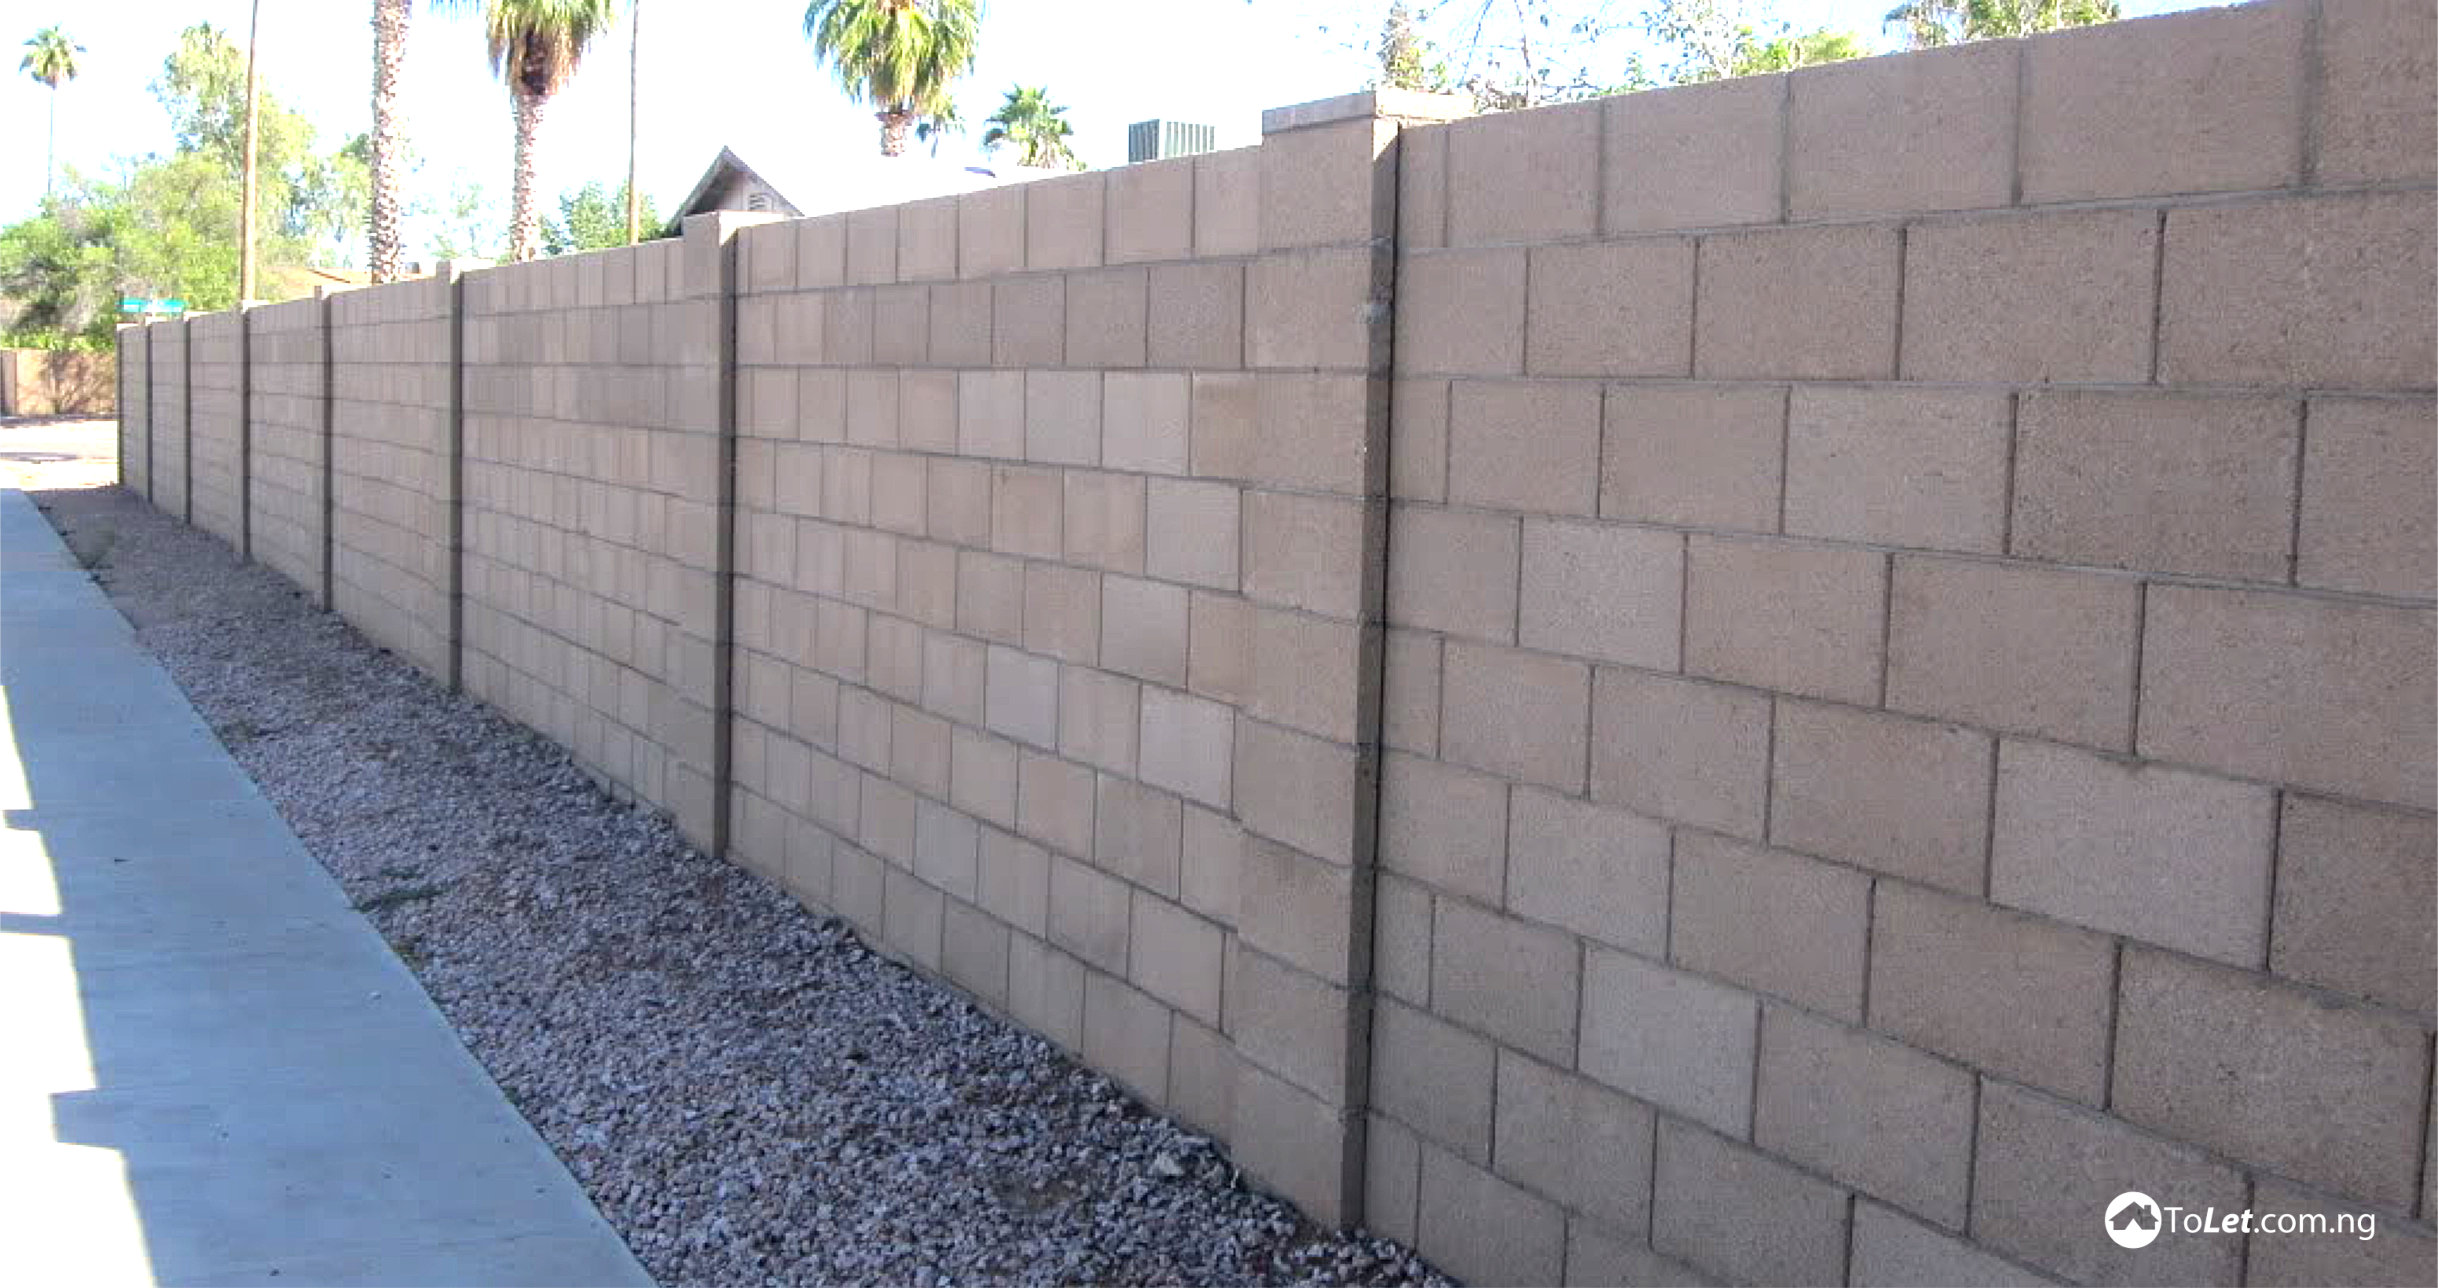 Cost of fencing a plot in nigeria propertypro insider